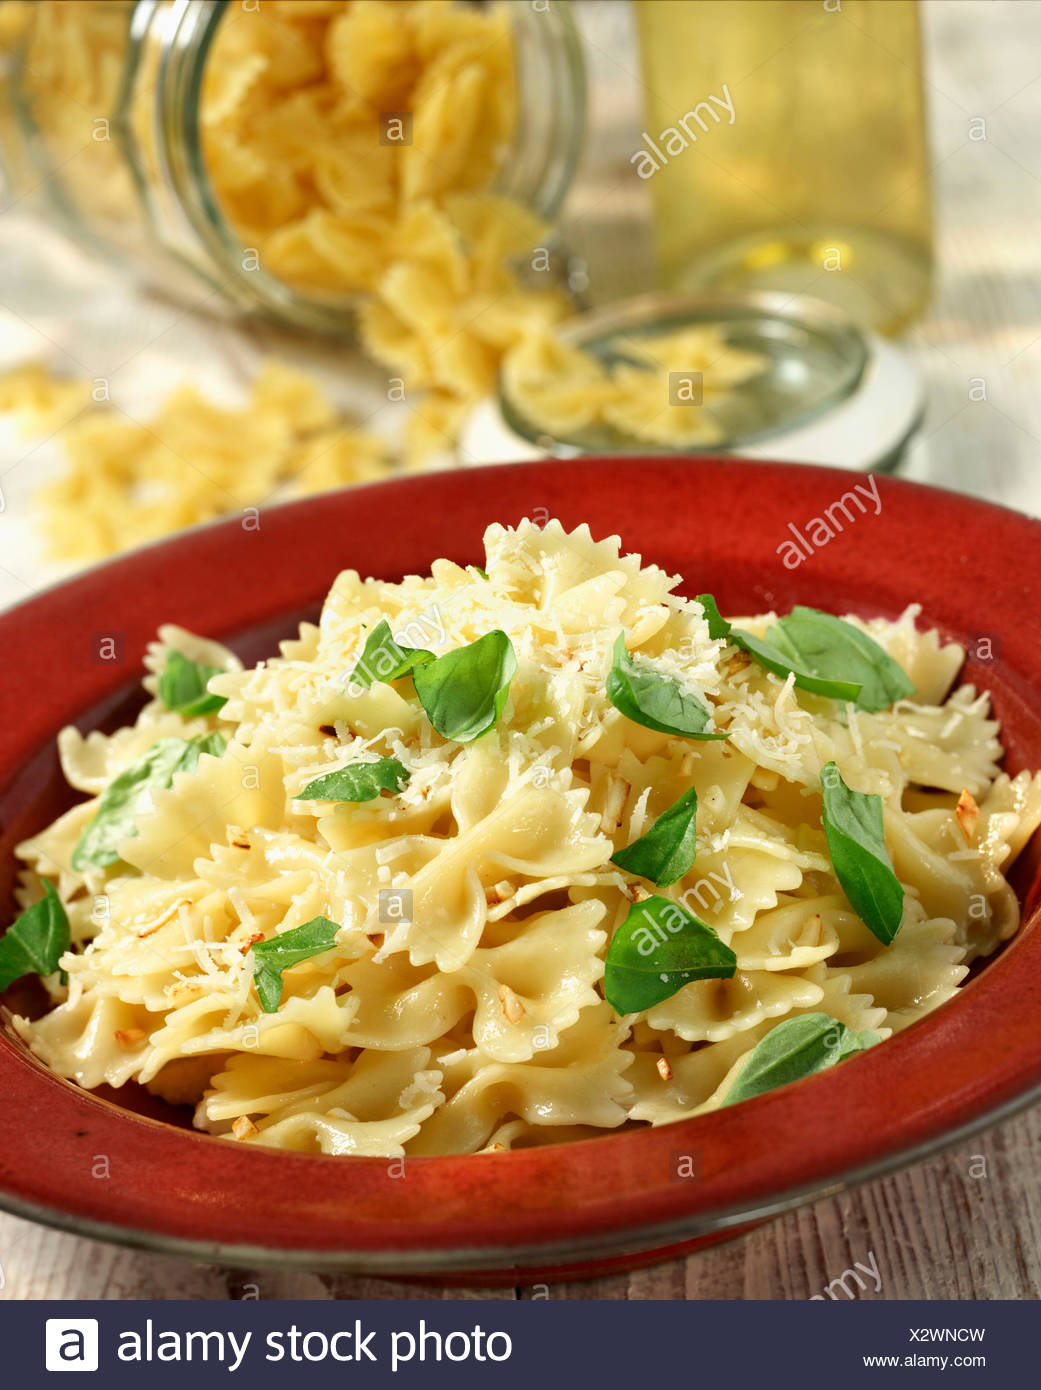 Plate Of Homemade Farfalle With Oil And Garlic - Stock Image